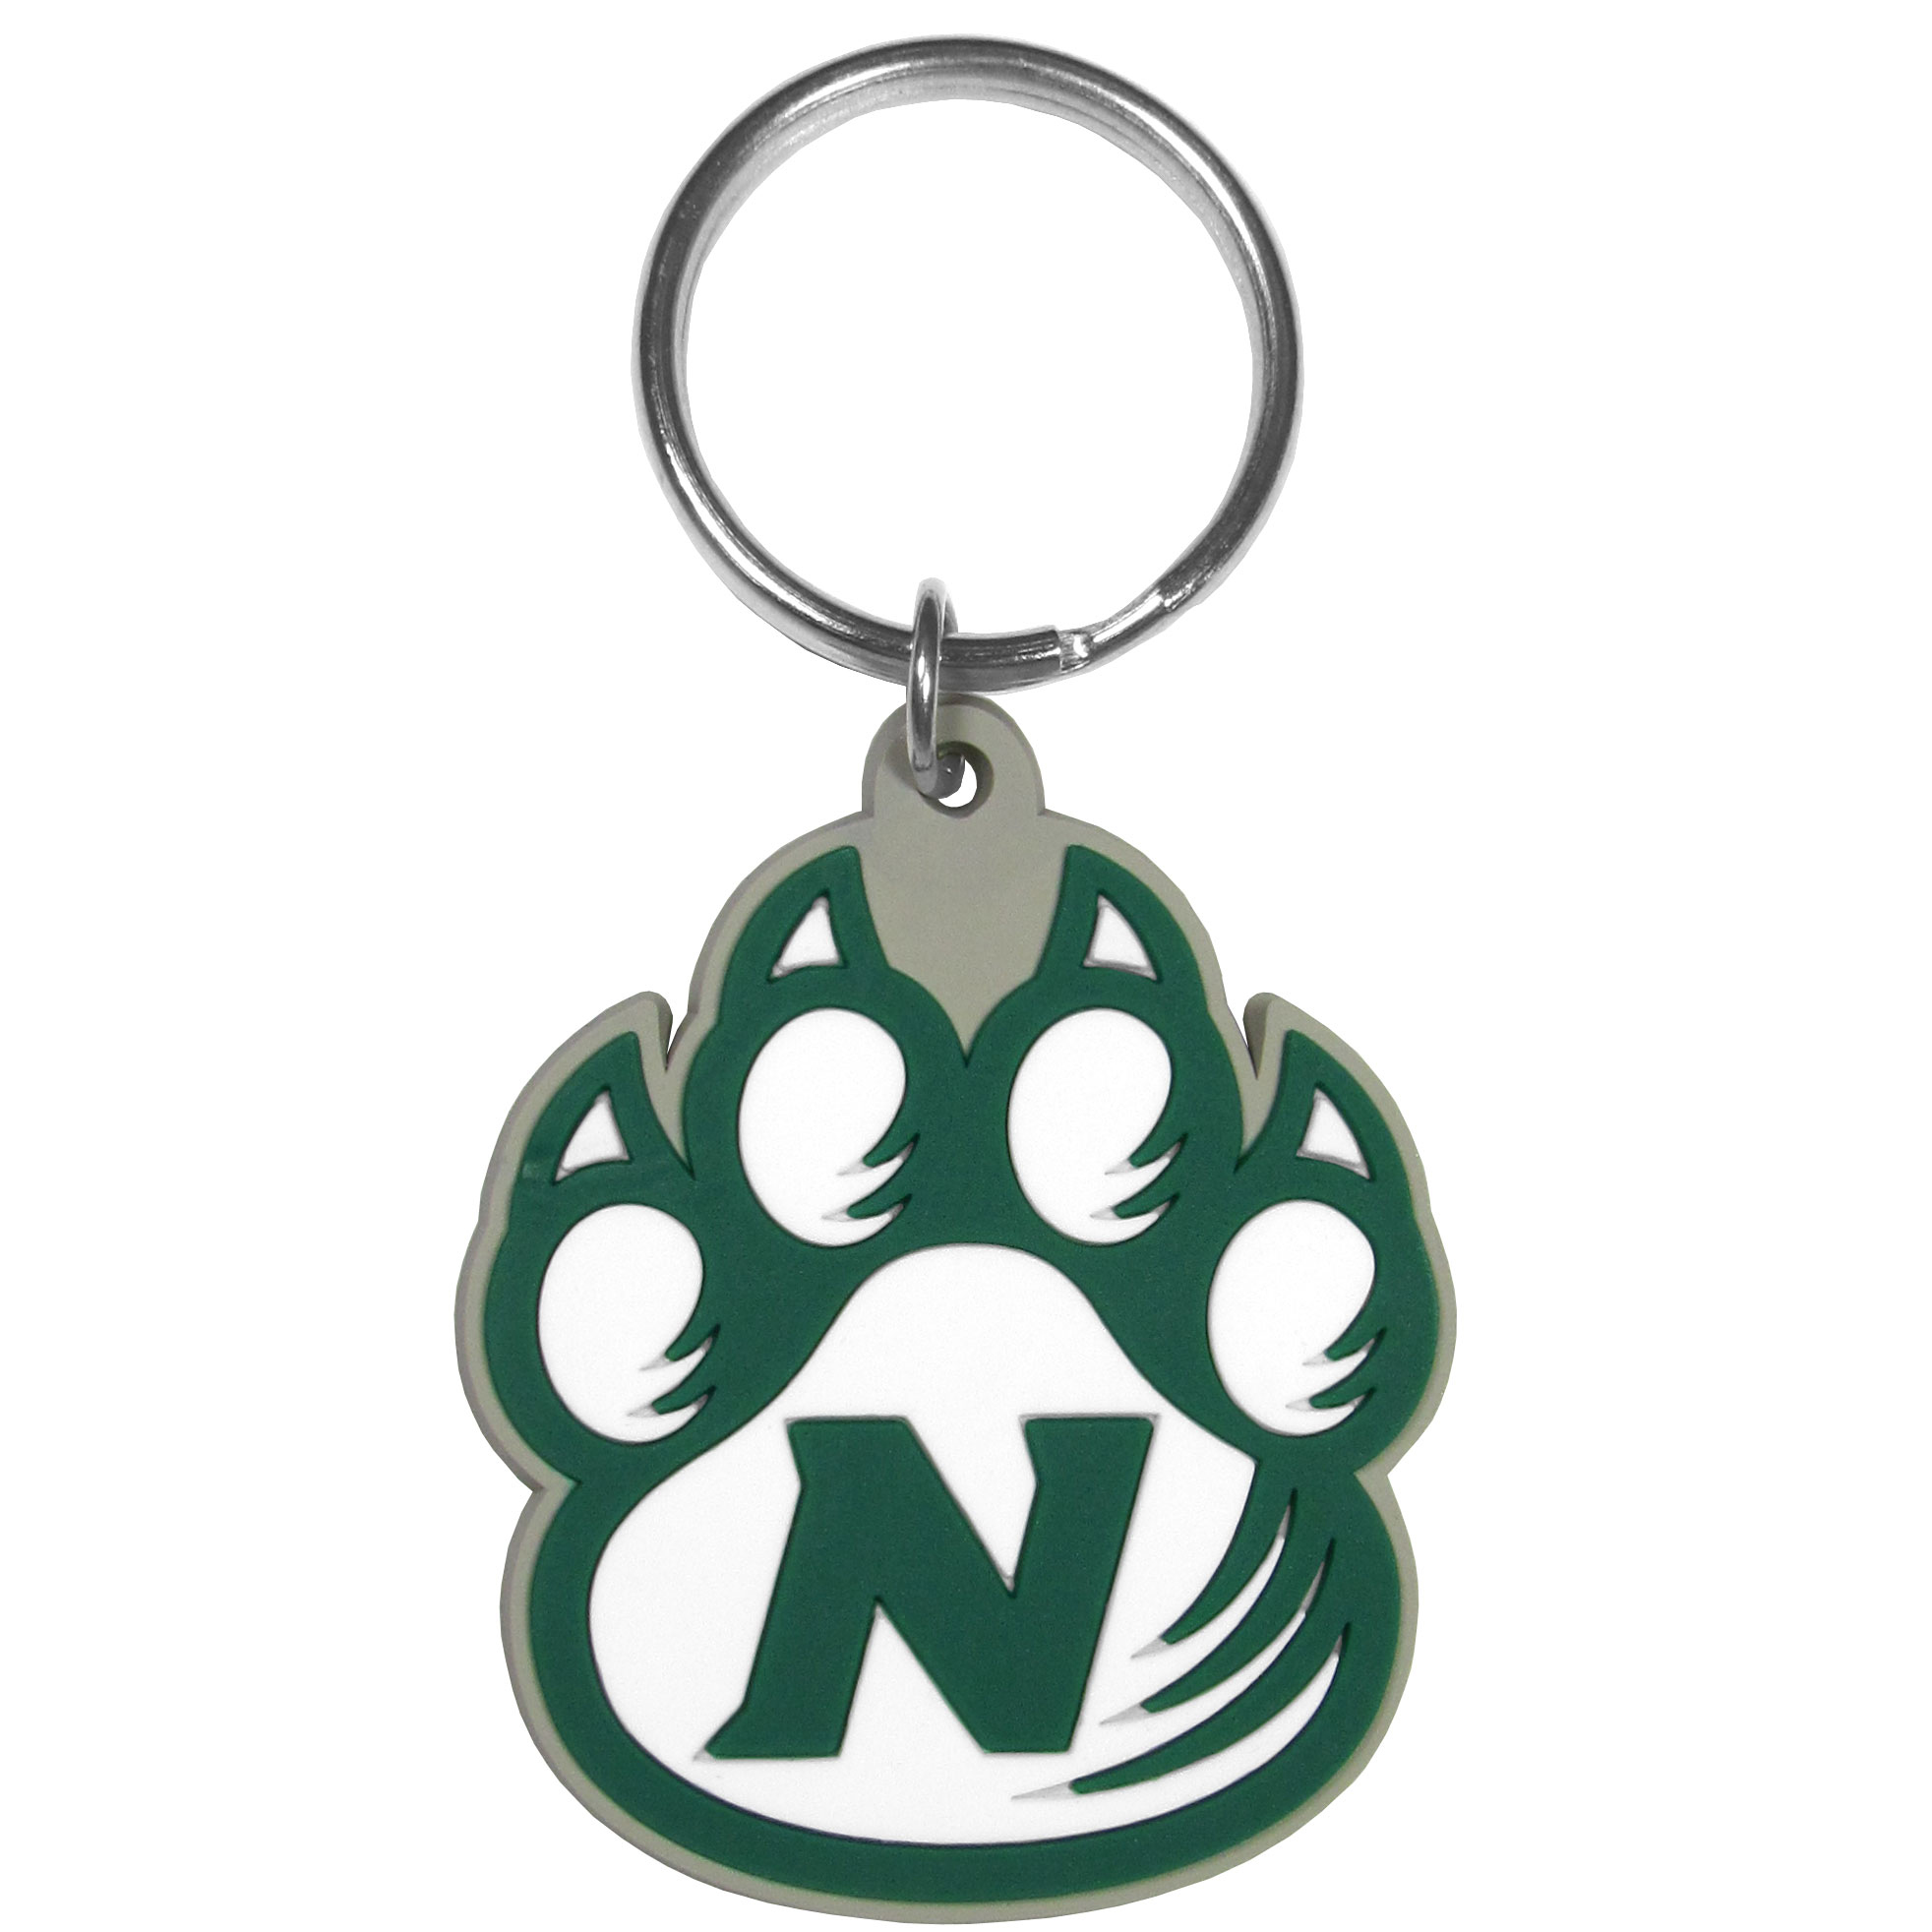 Northwest Missouri St. Bearcats Flex Key Chain - Our fun, flexible Northwest Missouri St. Bearcats key chains are made of a rubbery material that is layered to create a bright, textured logo.